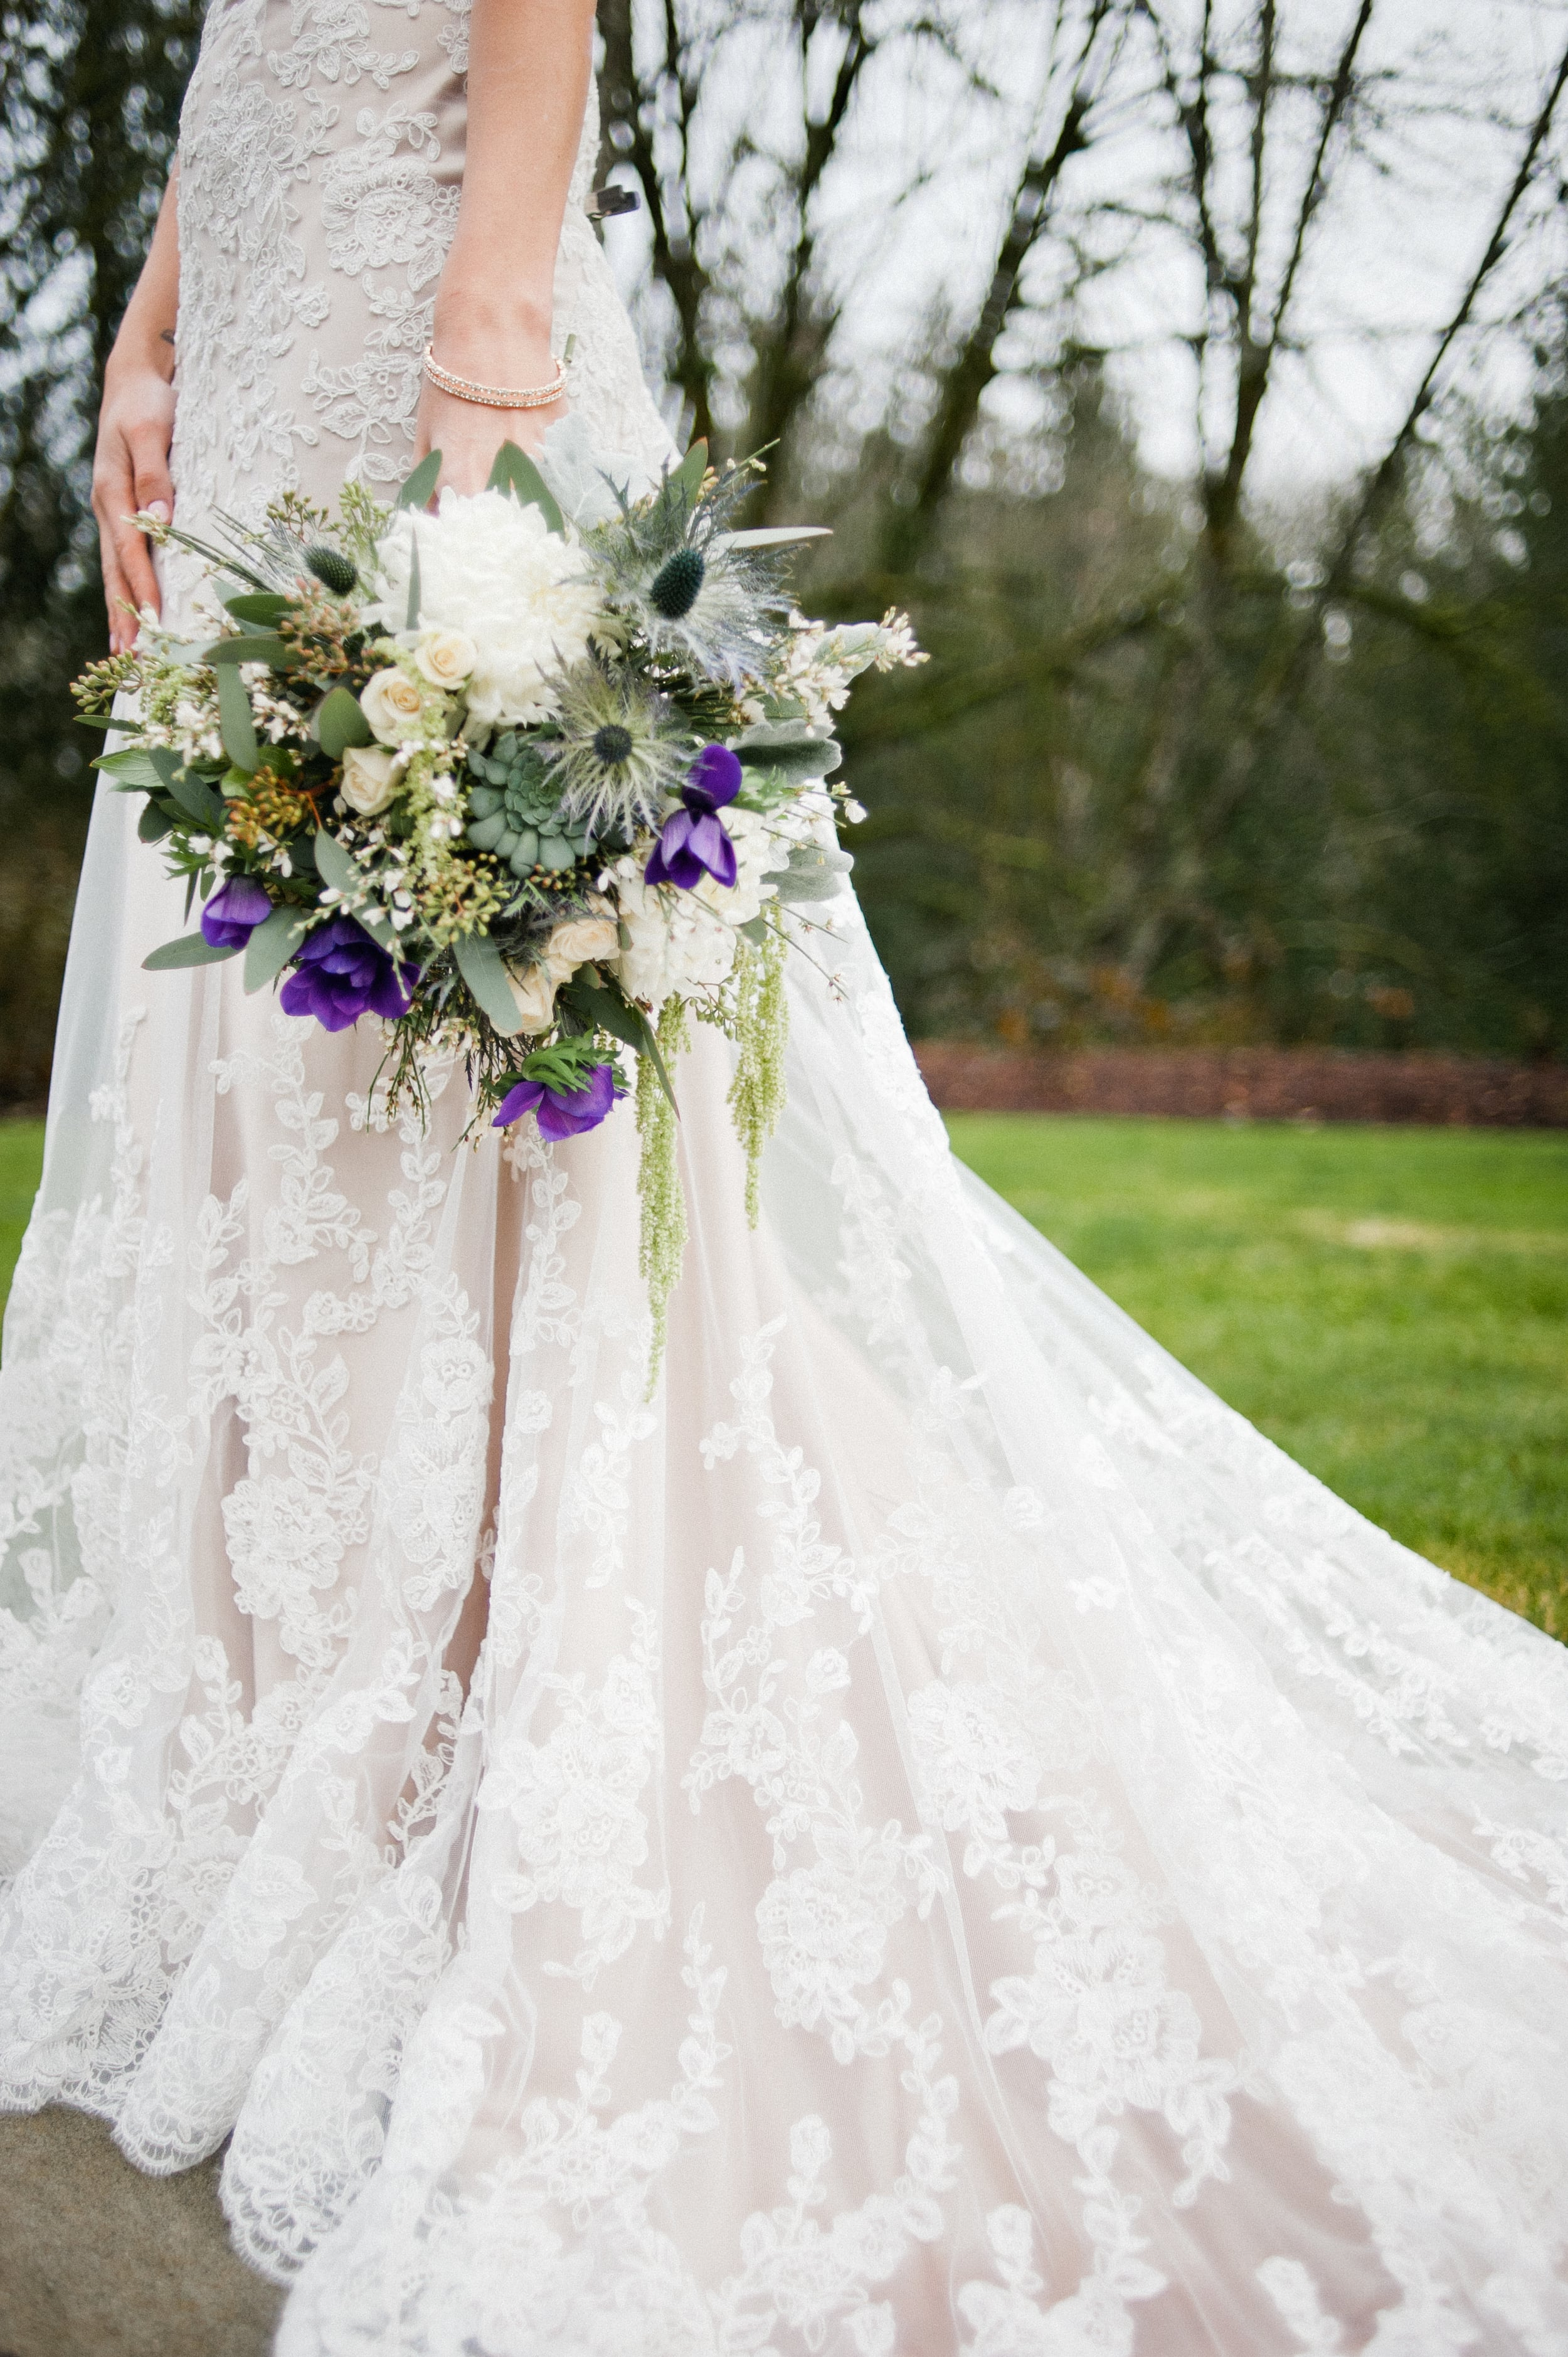 French Country Wedding Inspiration | Wedding Wise Seattle | French Creek Manor Wedding | Meredith McKee Photography and Design